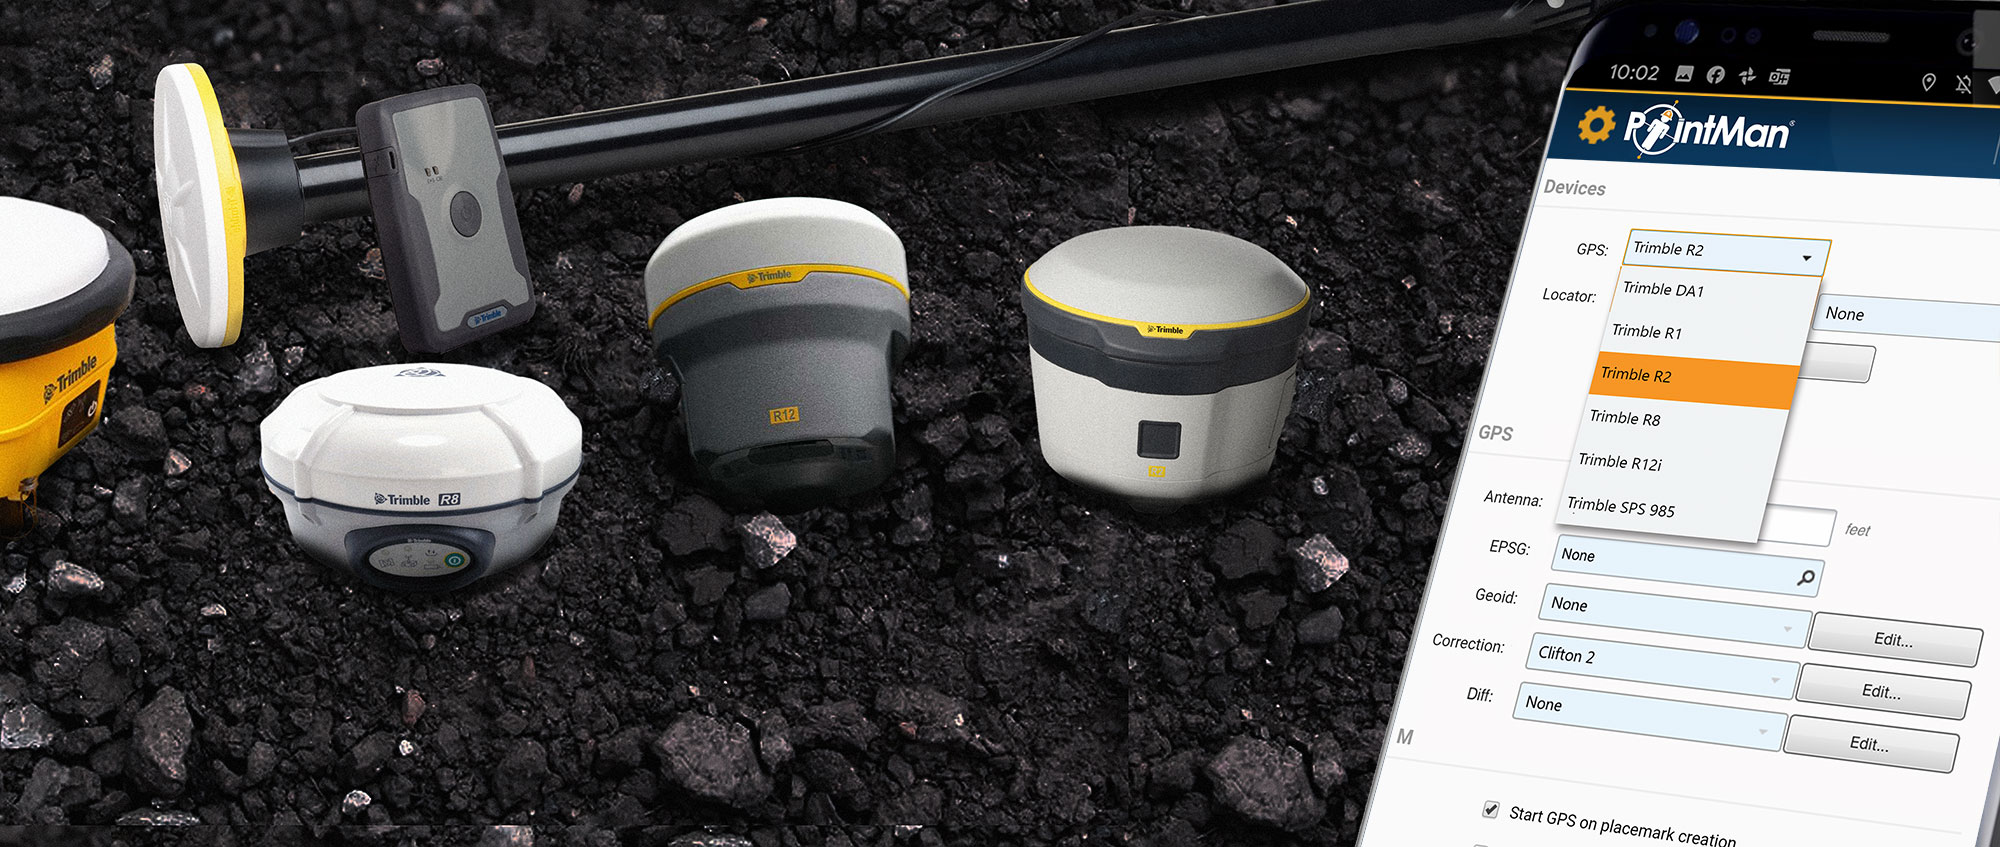 Pair a locator and GPS unit with PointMan at the same time!